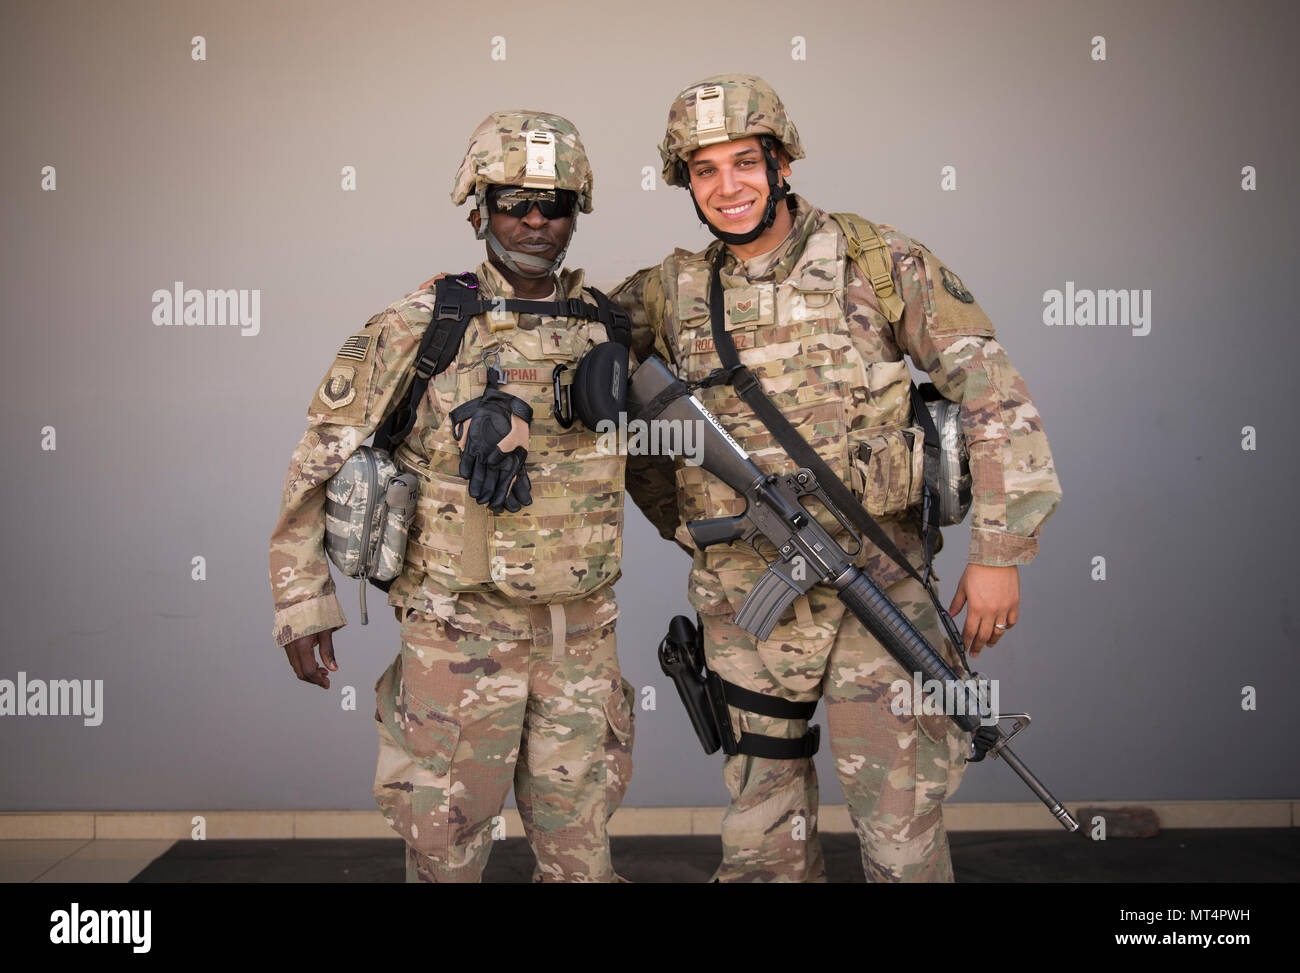 Chaplain (Capt.) John Appiah and Staff Sgt. Christopher Rodriguez, 455th Air Expeditionary Wing, prepare to leave Hamid Karzai International Airport, Kabul, July 23, 2017. Since chaplains are noncombatants, their assistants, though not trained bodyguards, take on the extra responsibility of defending their chaplain if in a hostile situation. (U.S. Air Force photo by Staff Sgt. Benjamin Gonsier) Stock Photo